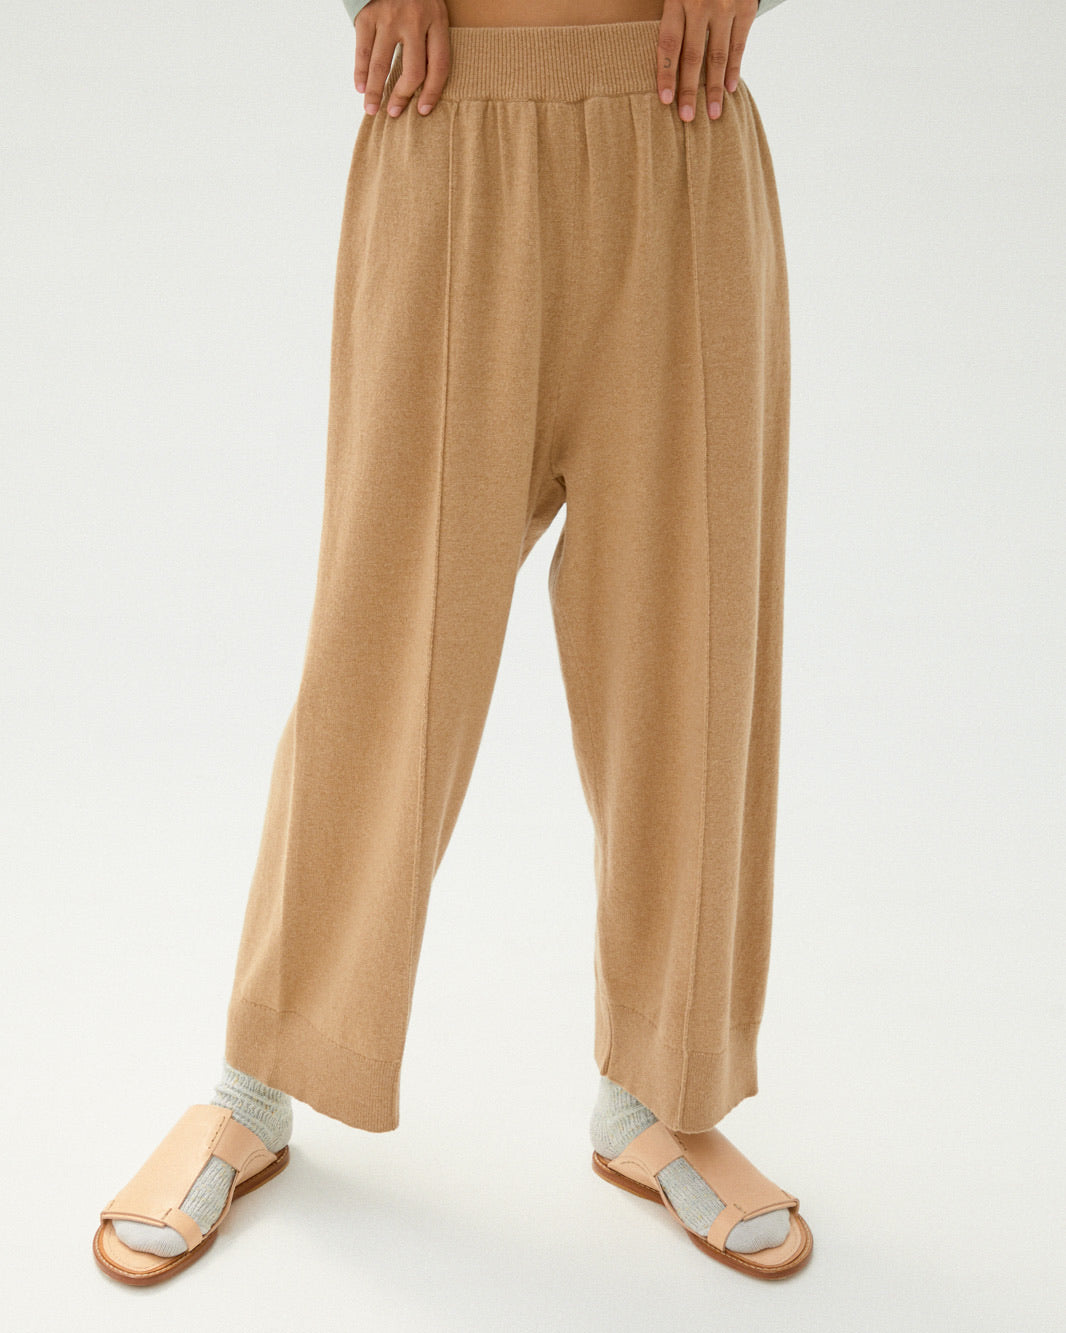 Cashmere Knit Pant in Camel.